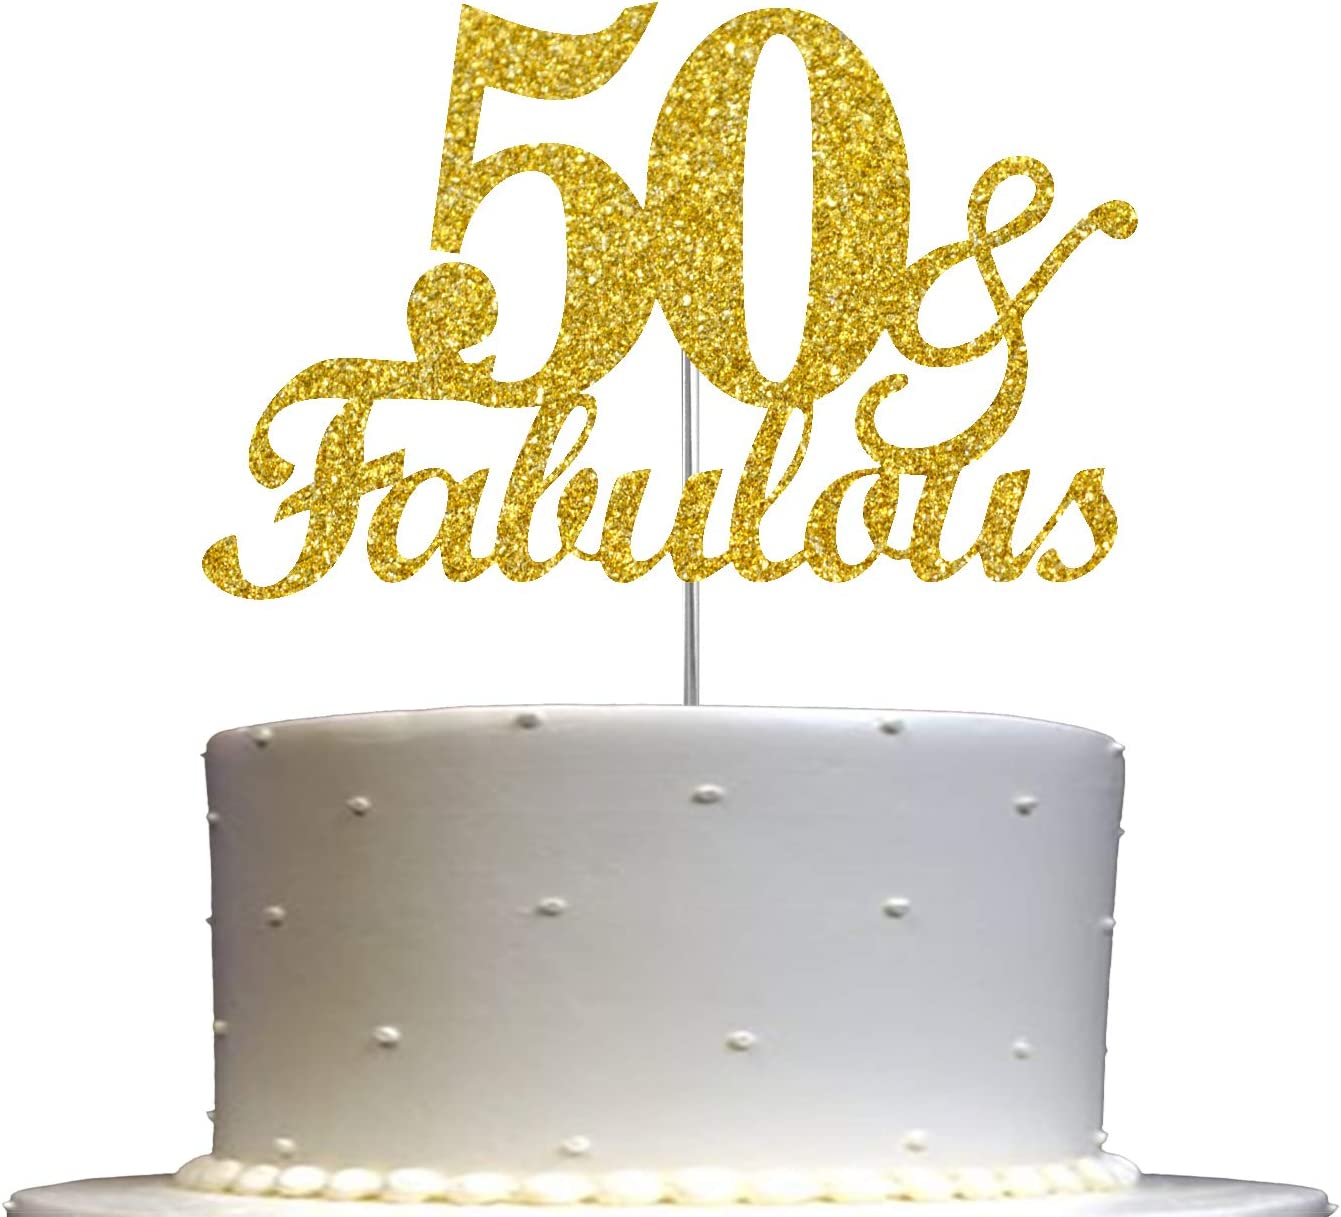 Fabulous & 50 Cake Topper Gold Glitter, 50th Birthday Party Decoration Ideas, Premium Quality, Sturdy Doubled Sided Glitter, Acrylic Stick. Made in USA